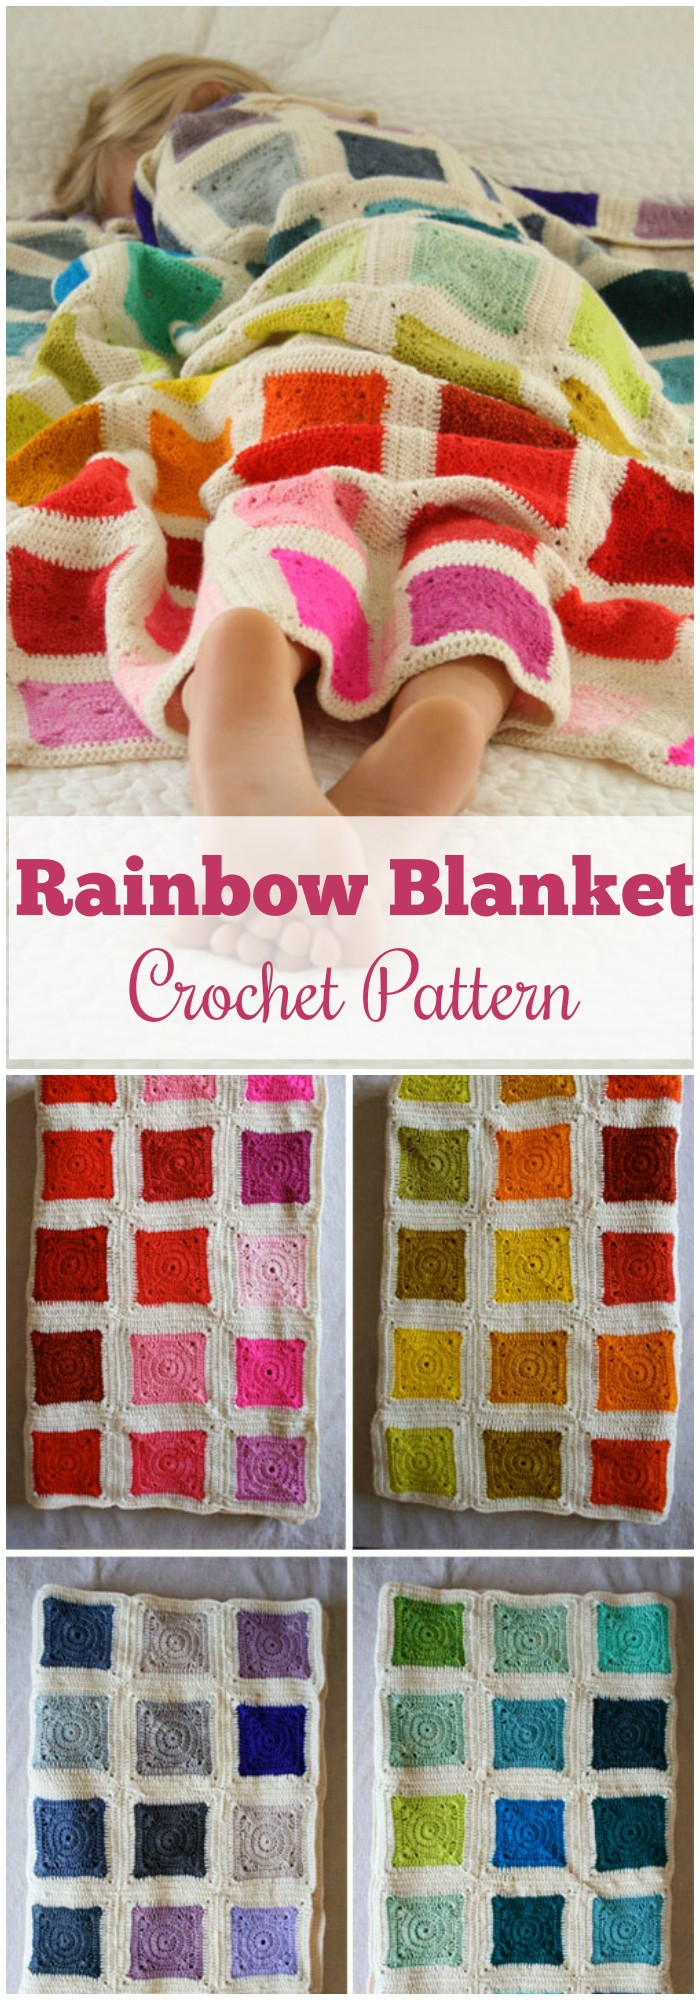 Rainbow Blanket Crochet Pattern - All of these free crochet blanket patterns are so much beautiful and really easy. Most of them are so much less time-consuming and even they can be completed in less than one week. #Blankets #crochetblanket #crochetblanketpatterns #freecrochetblanketpattern #freecrochetblanket